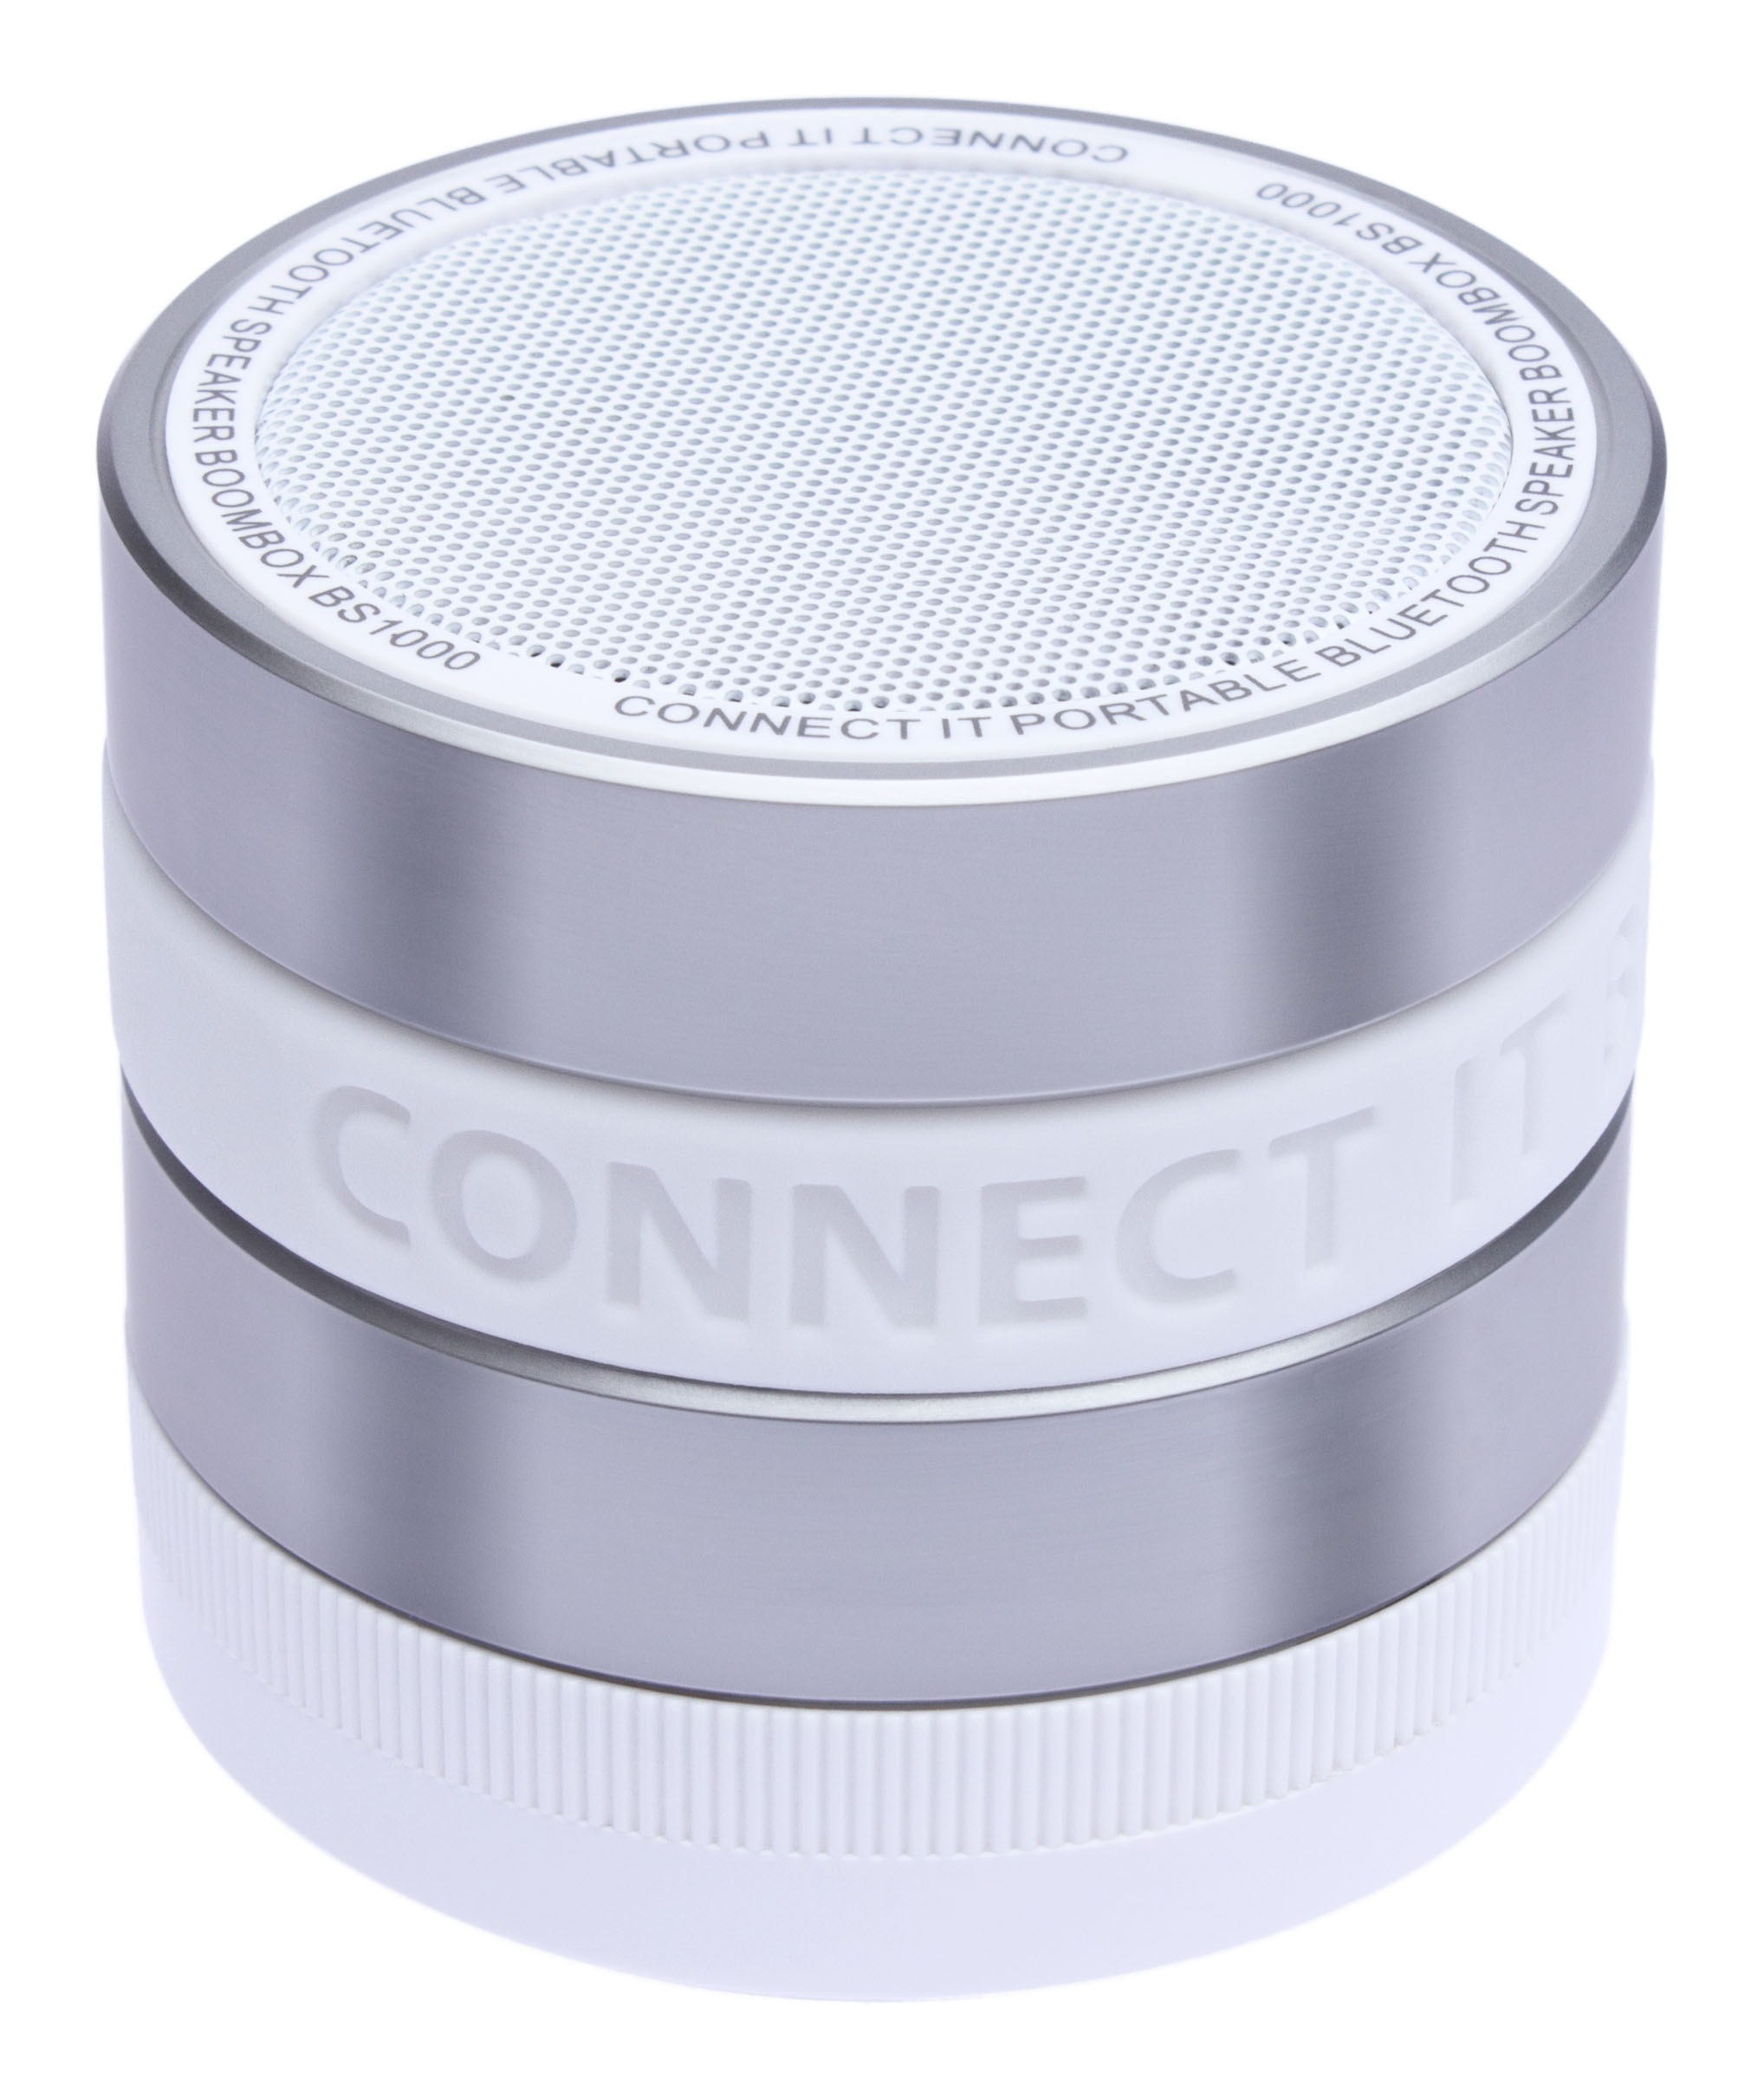 Connect IT BOOM BOX BS1000 SILVER